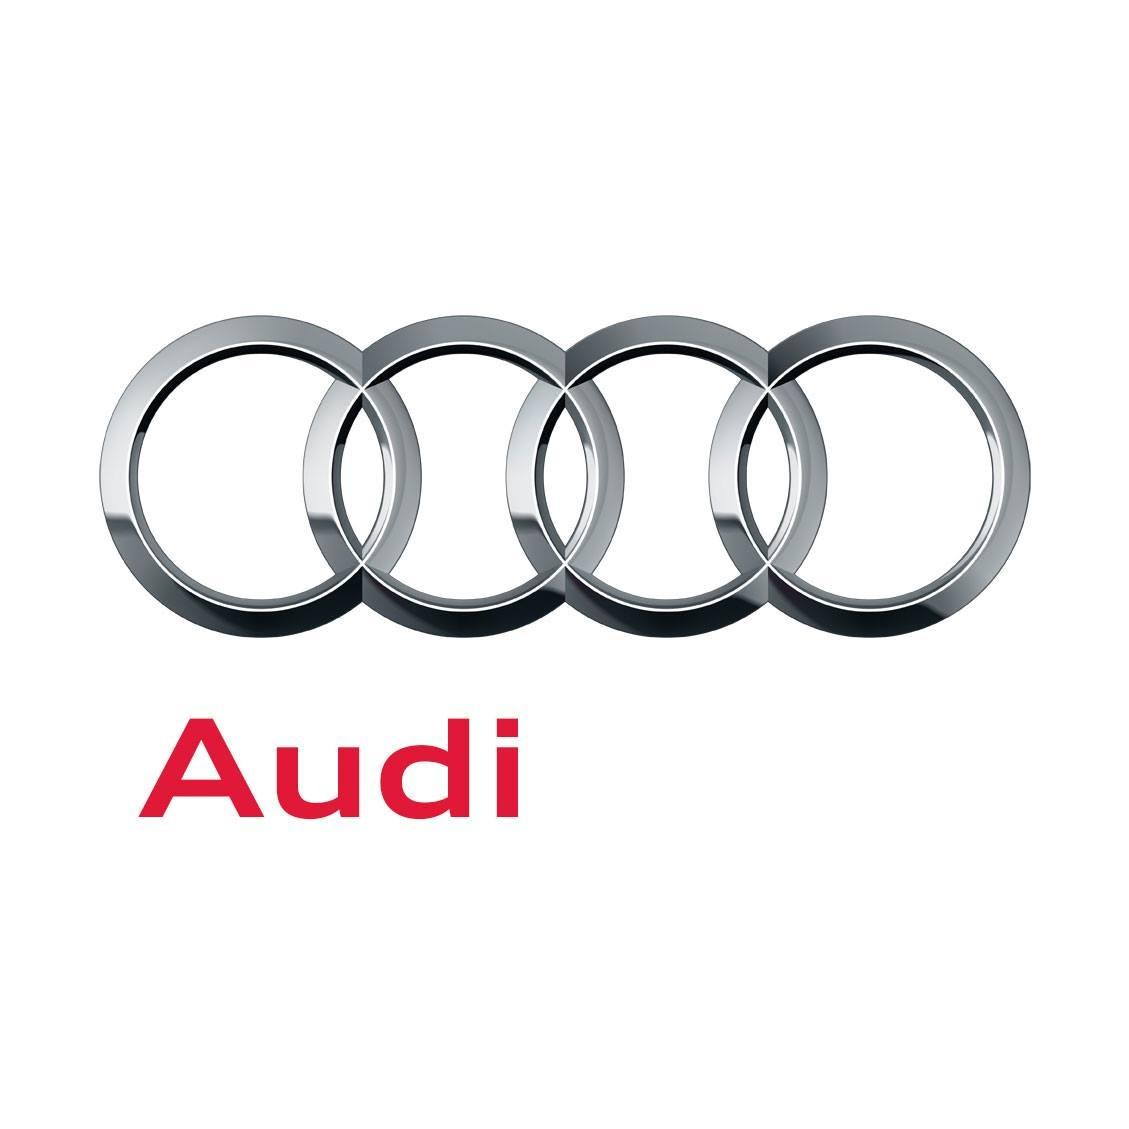 Audi Wilsonville 26600 Sw 95th Ave Wilsonville Or Auto